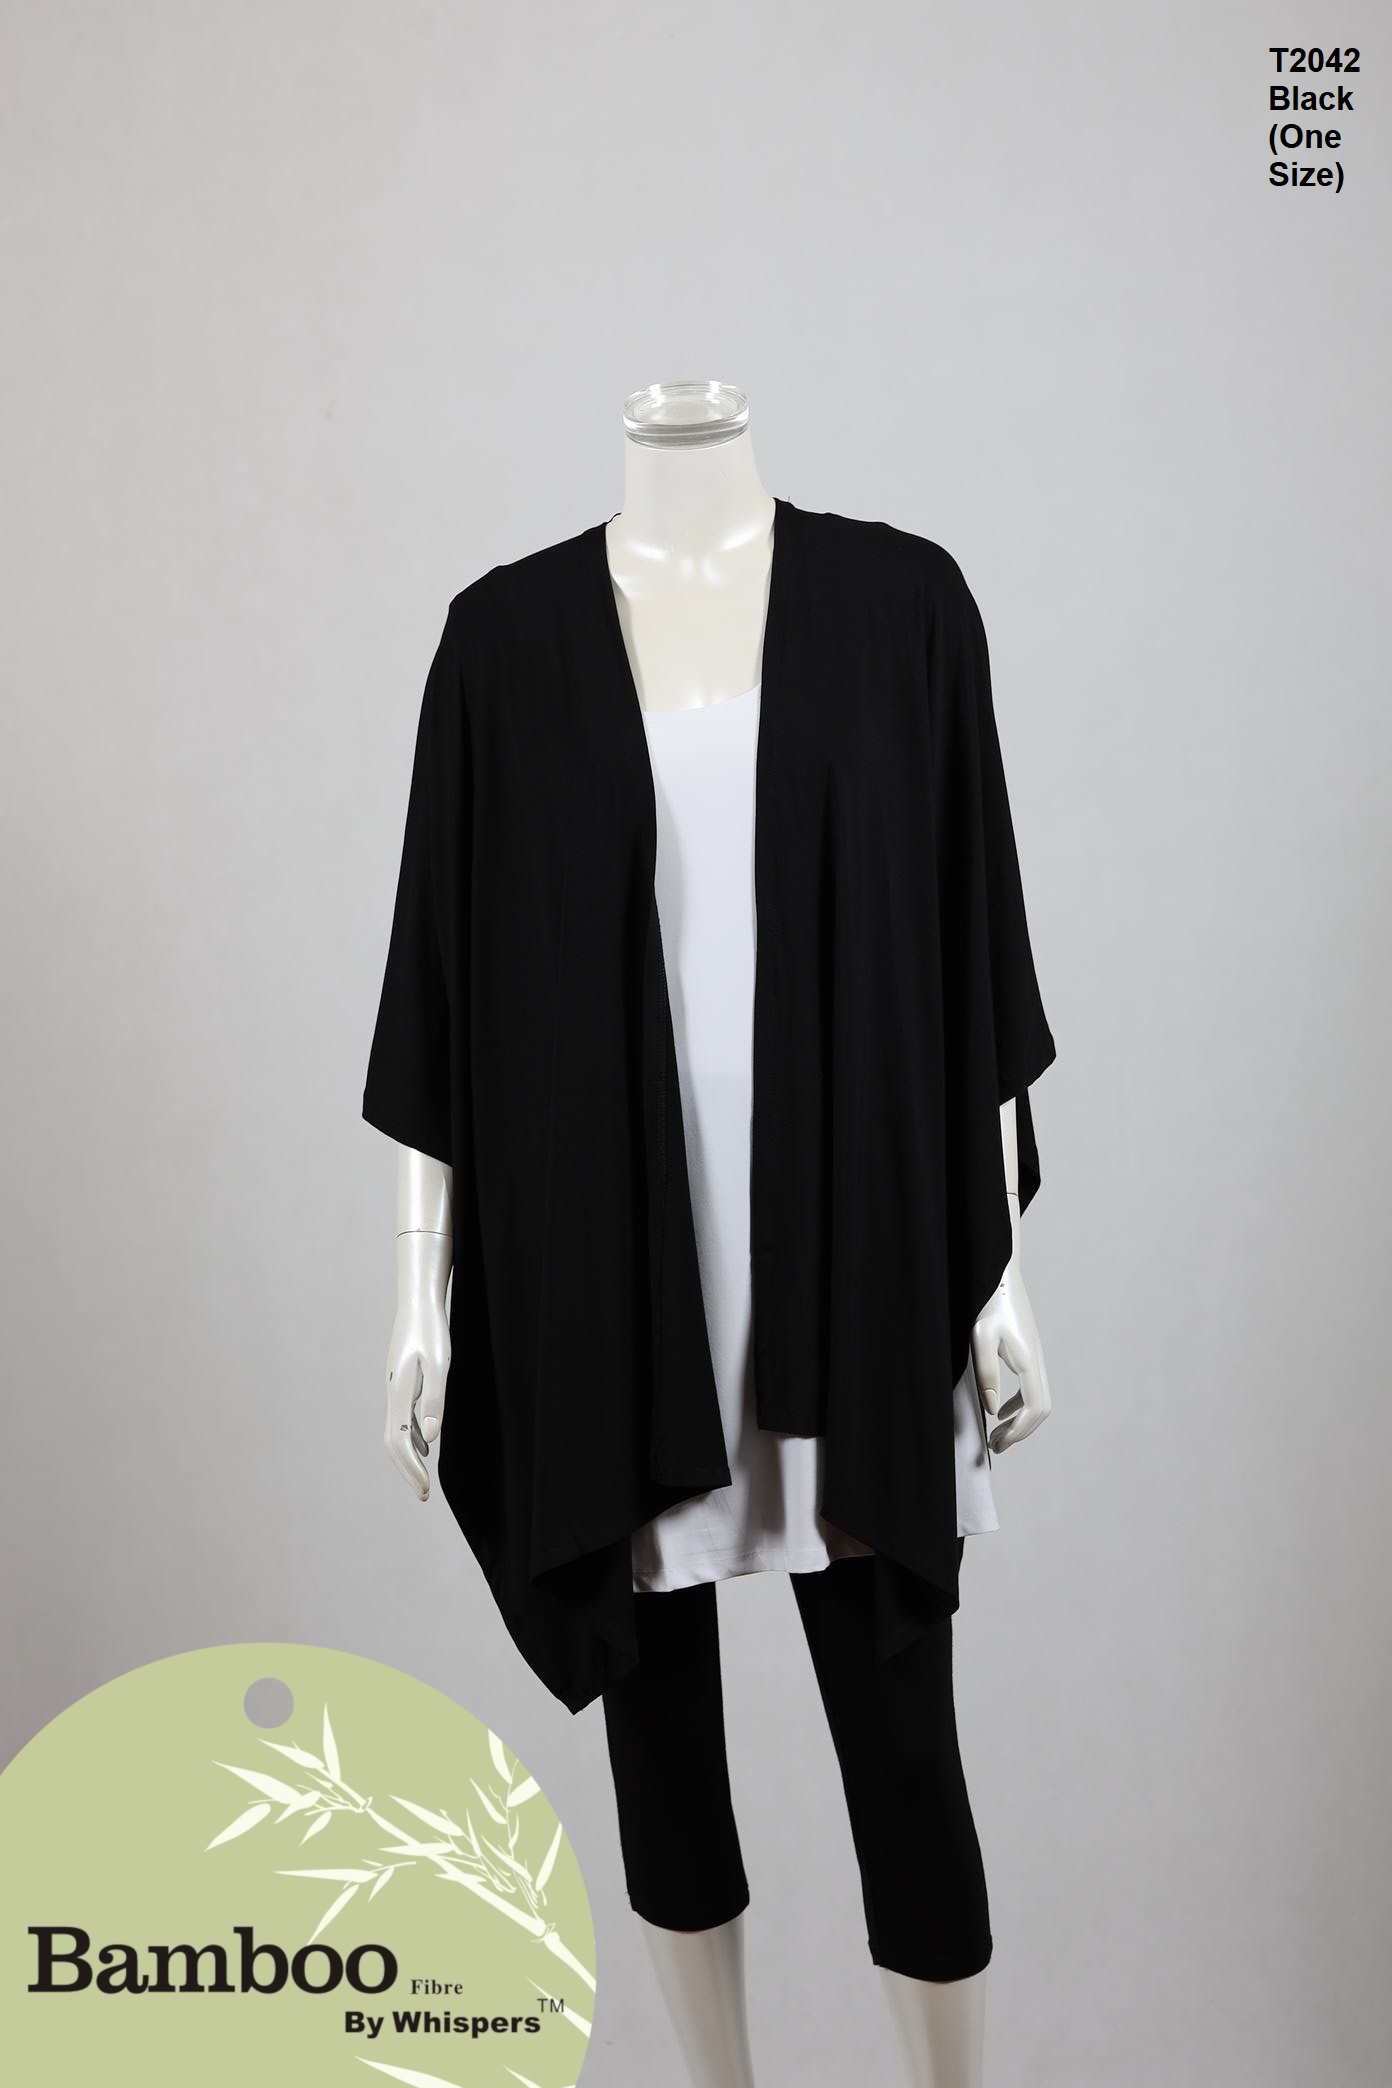 T2042-Bamboo Wrap-Black-One Size.JPG